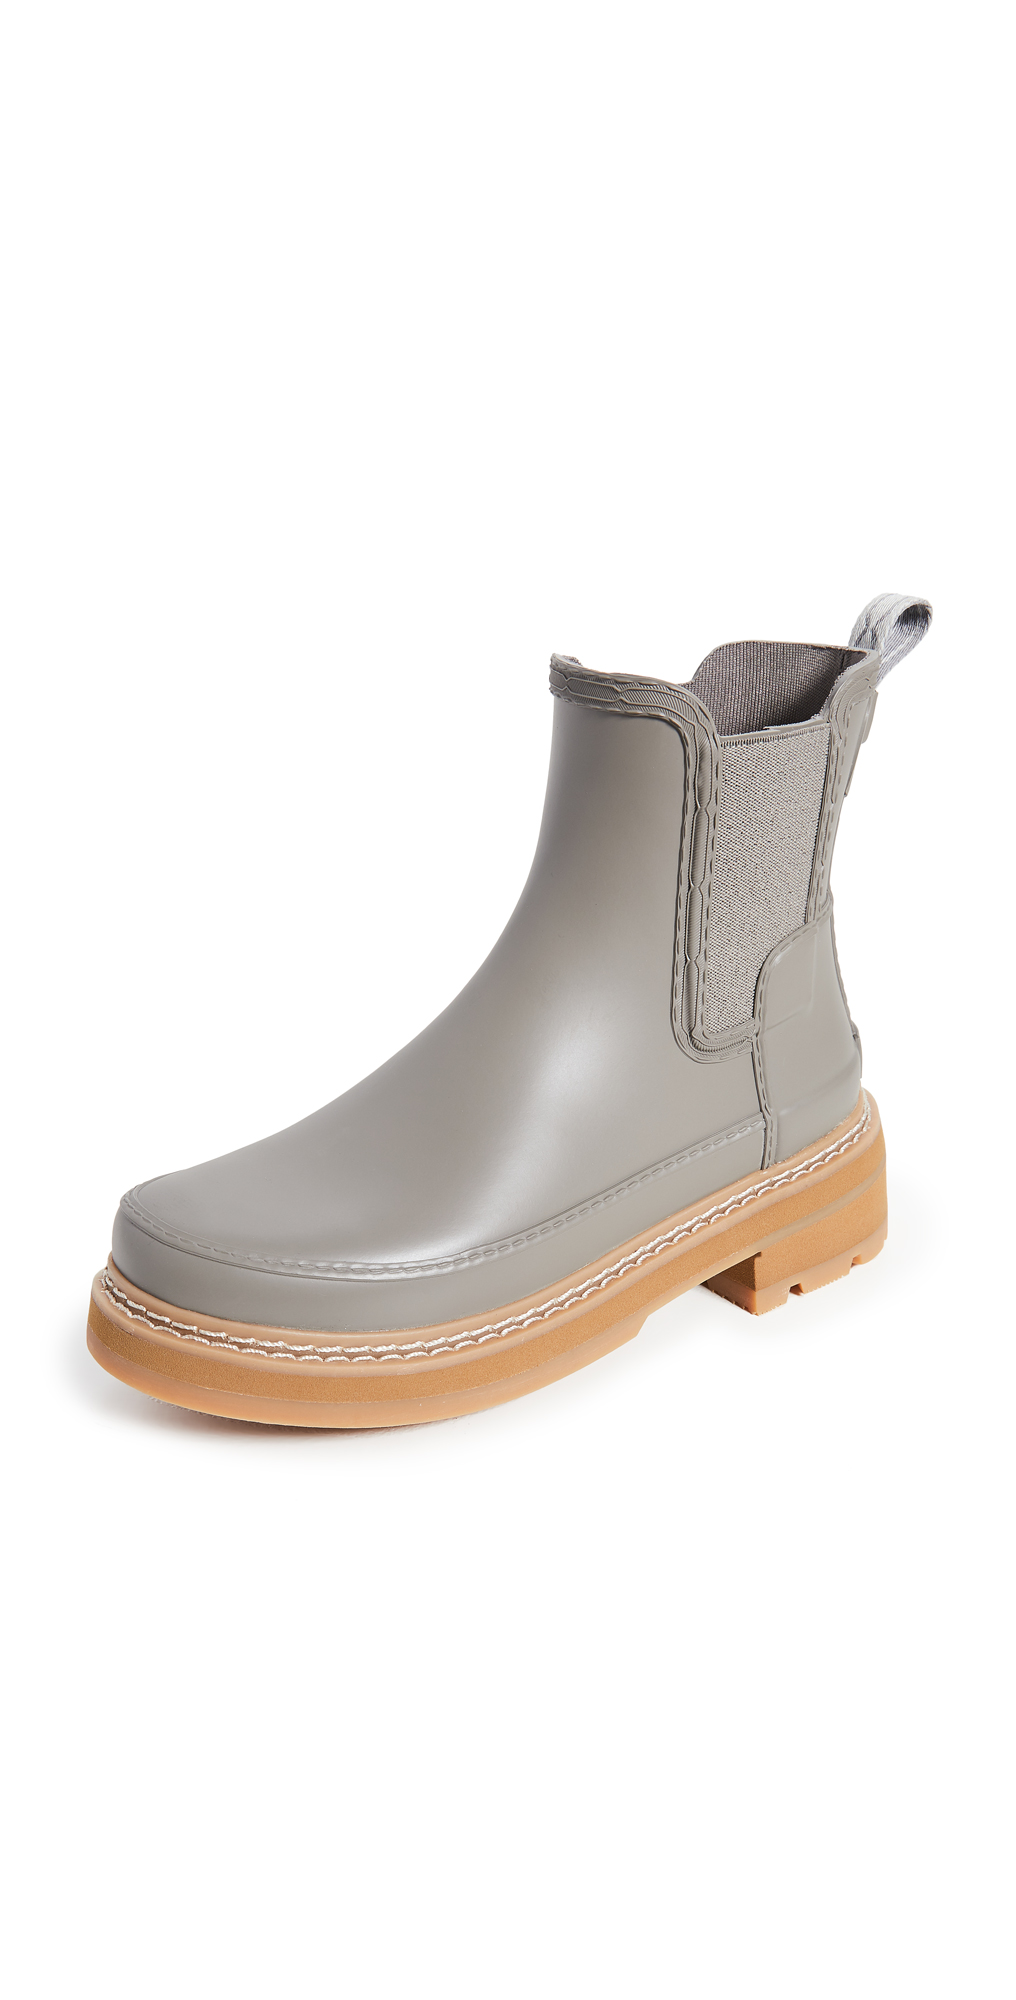 Hunter Boots Refined Stitch Boots